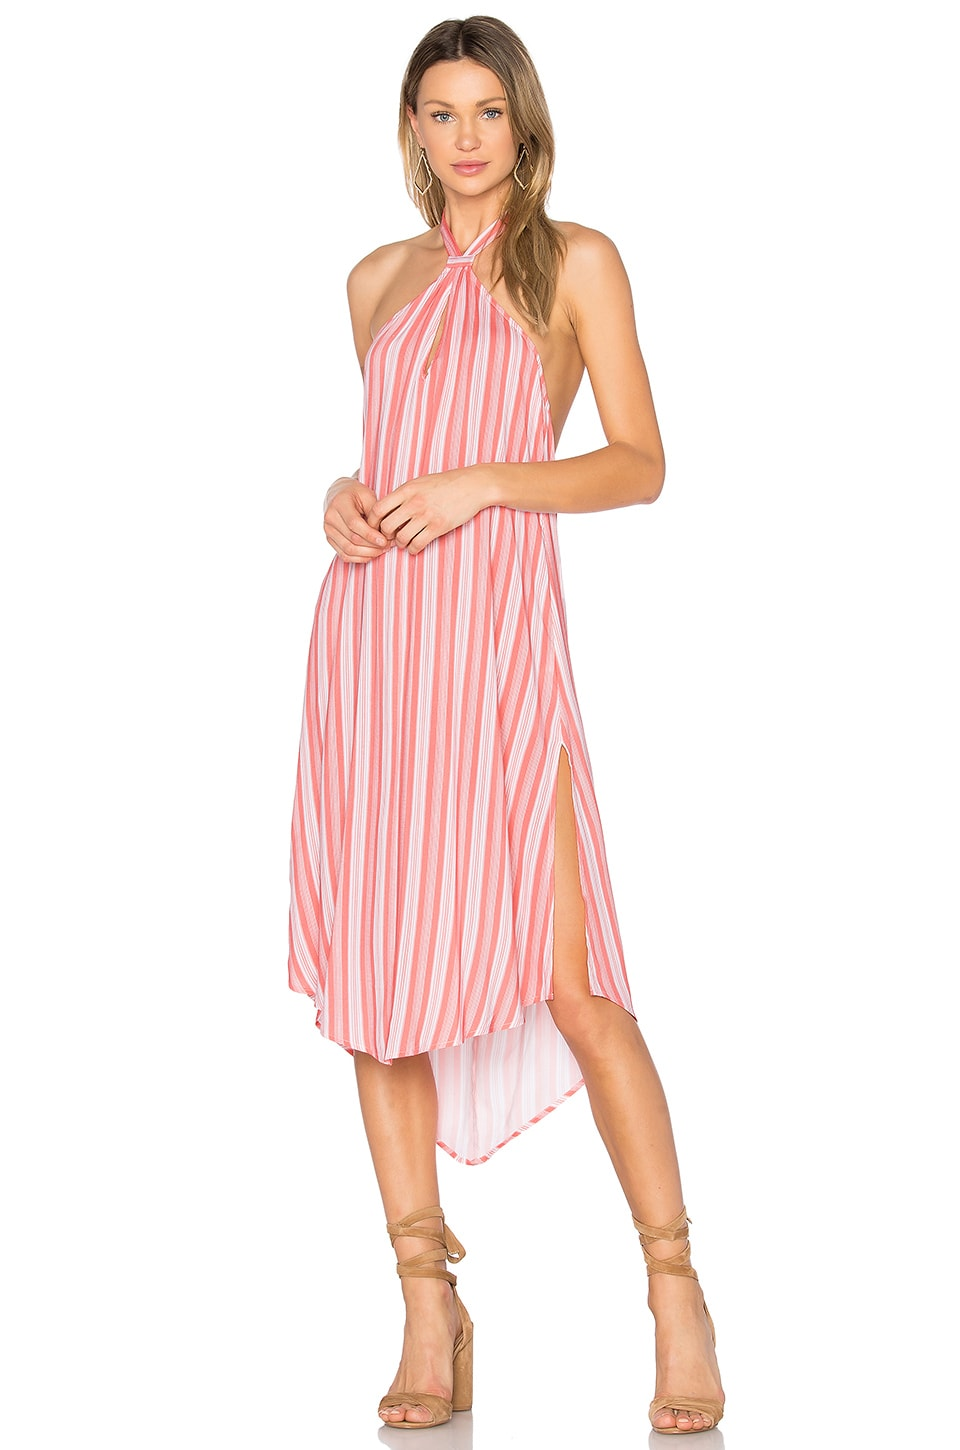 MINKPINK Haiti Halter Dress in Coral Stripe